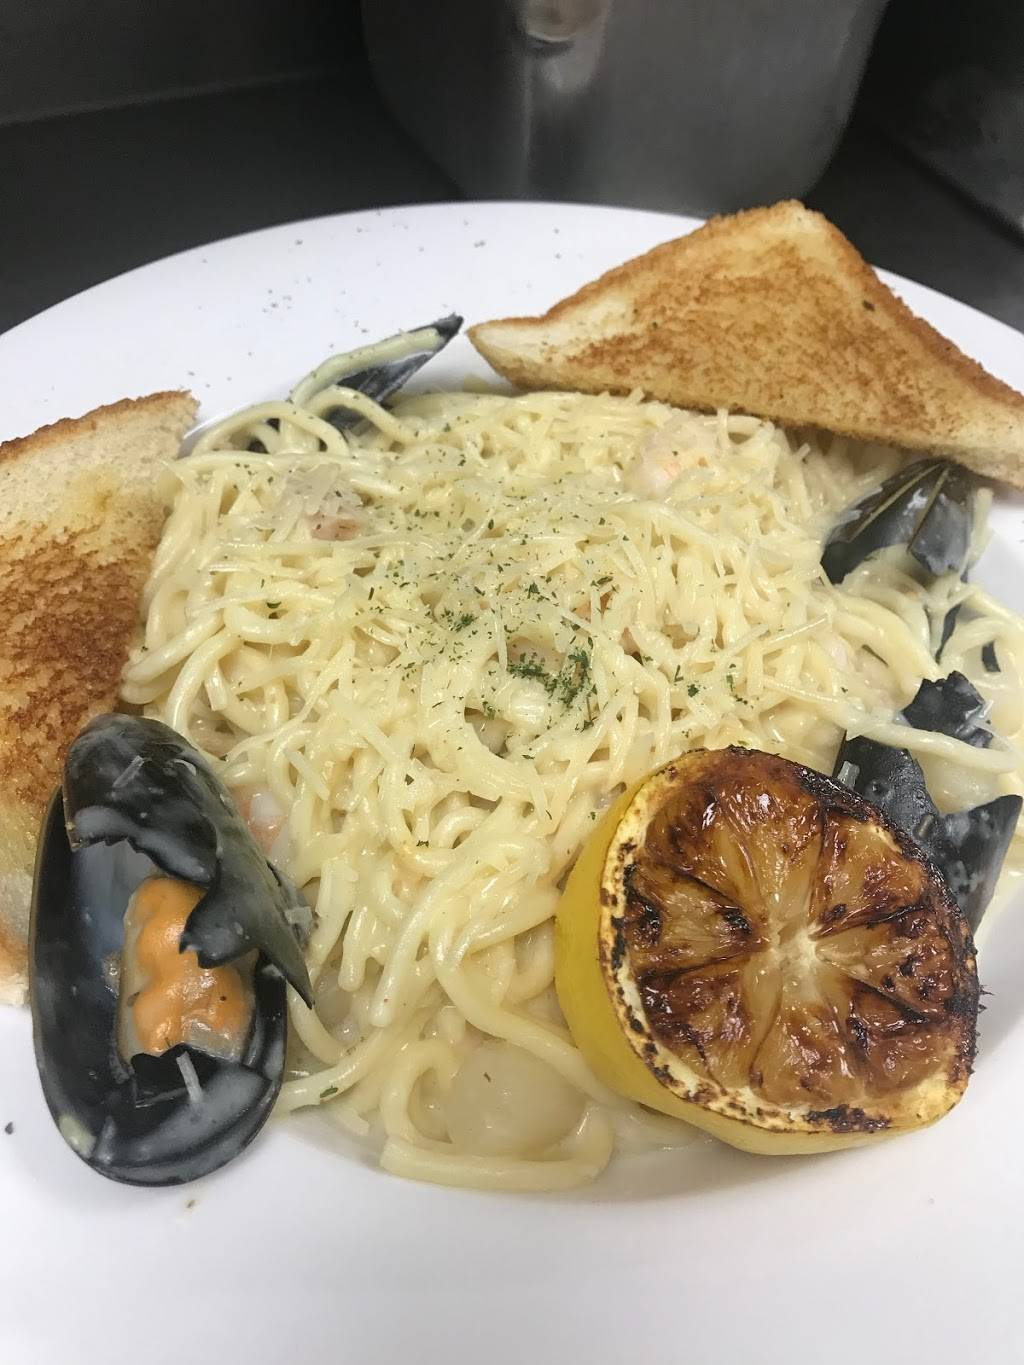 Samis Family Restaurant and Banquet Center | restaurant | 190 S Lincoln Dr, Troy, MO 63379, USA | 6367752368 OR +1 636-775-2368